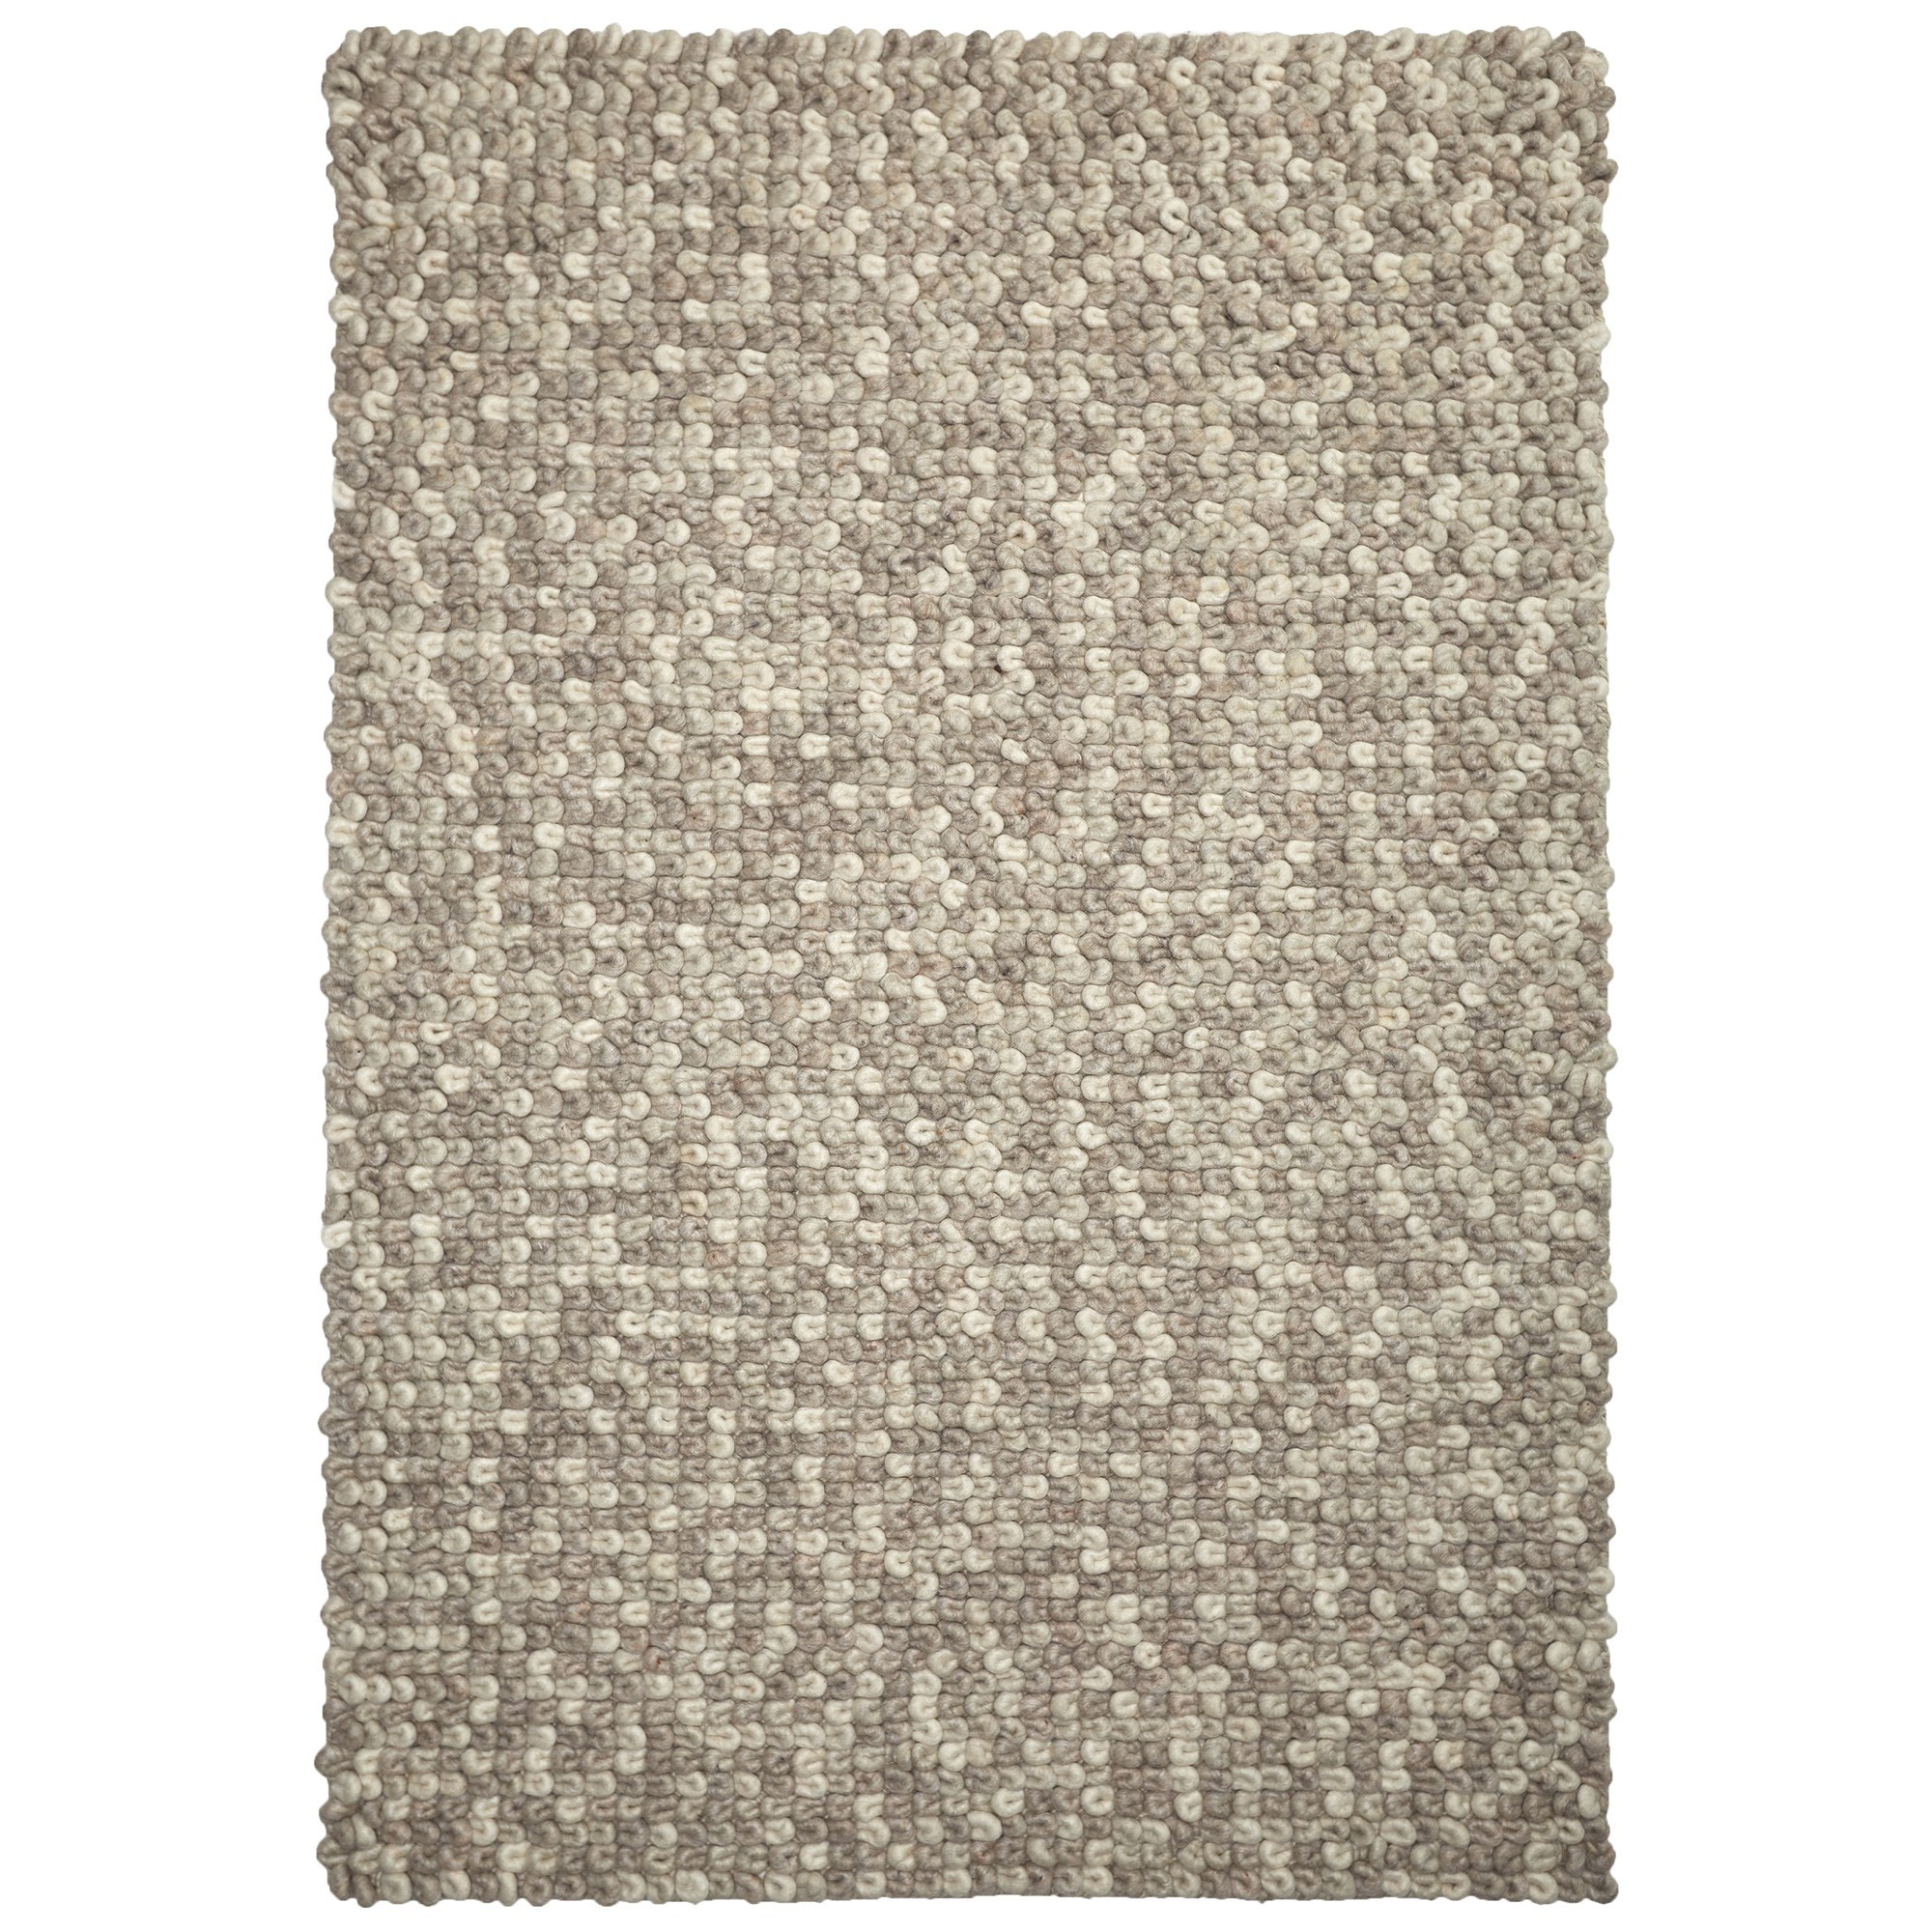 Sleeping Loop Wool Rug, 330x240cm